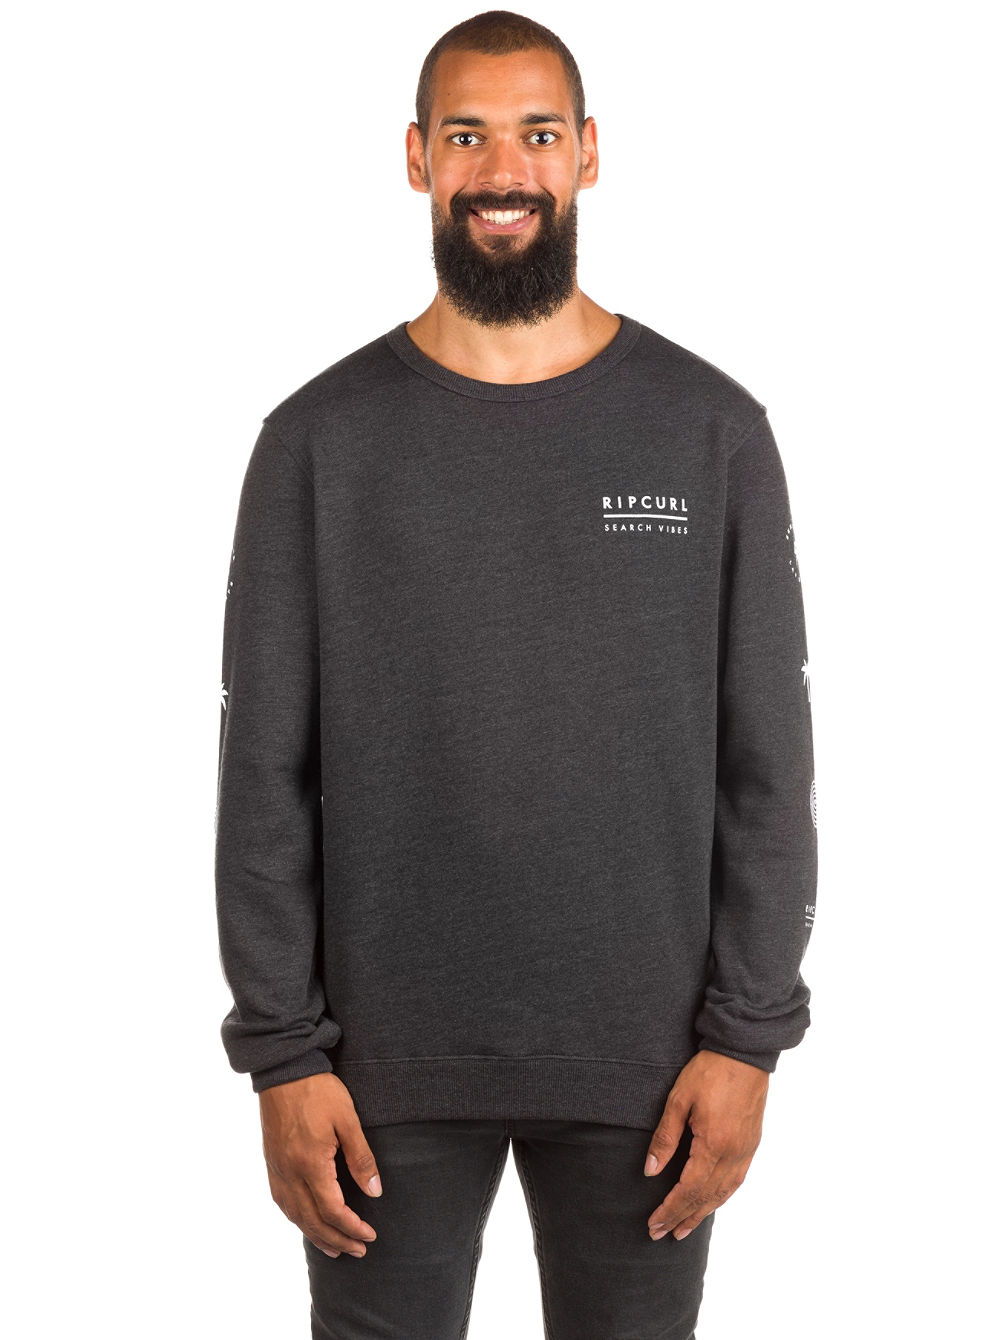 Stacked Vibes Crew Sweater